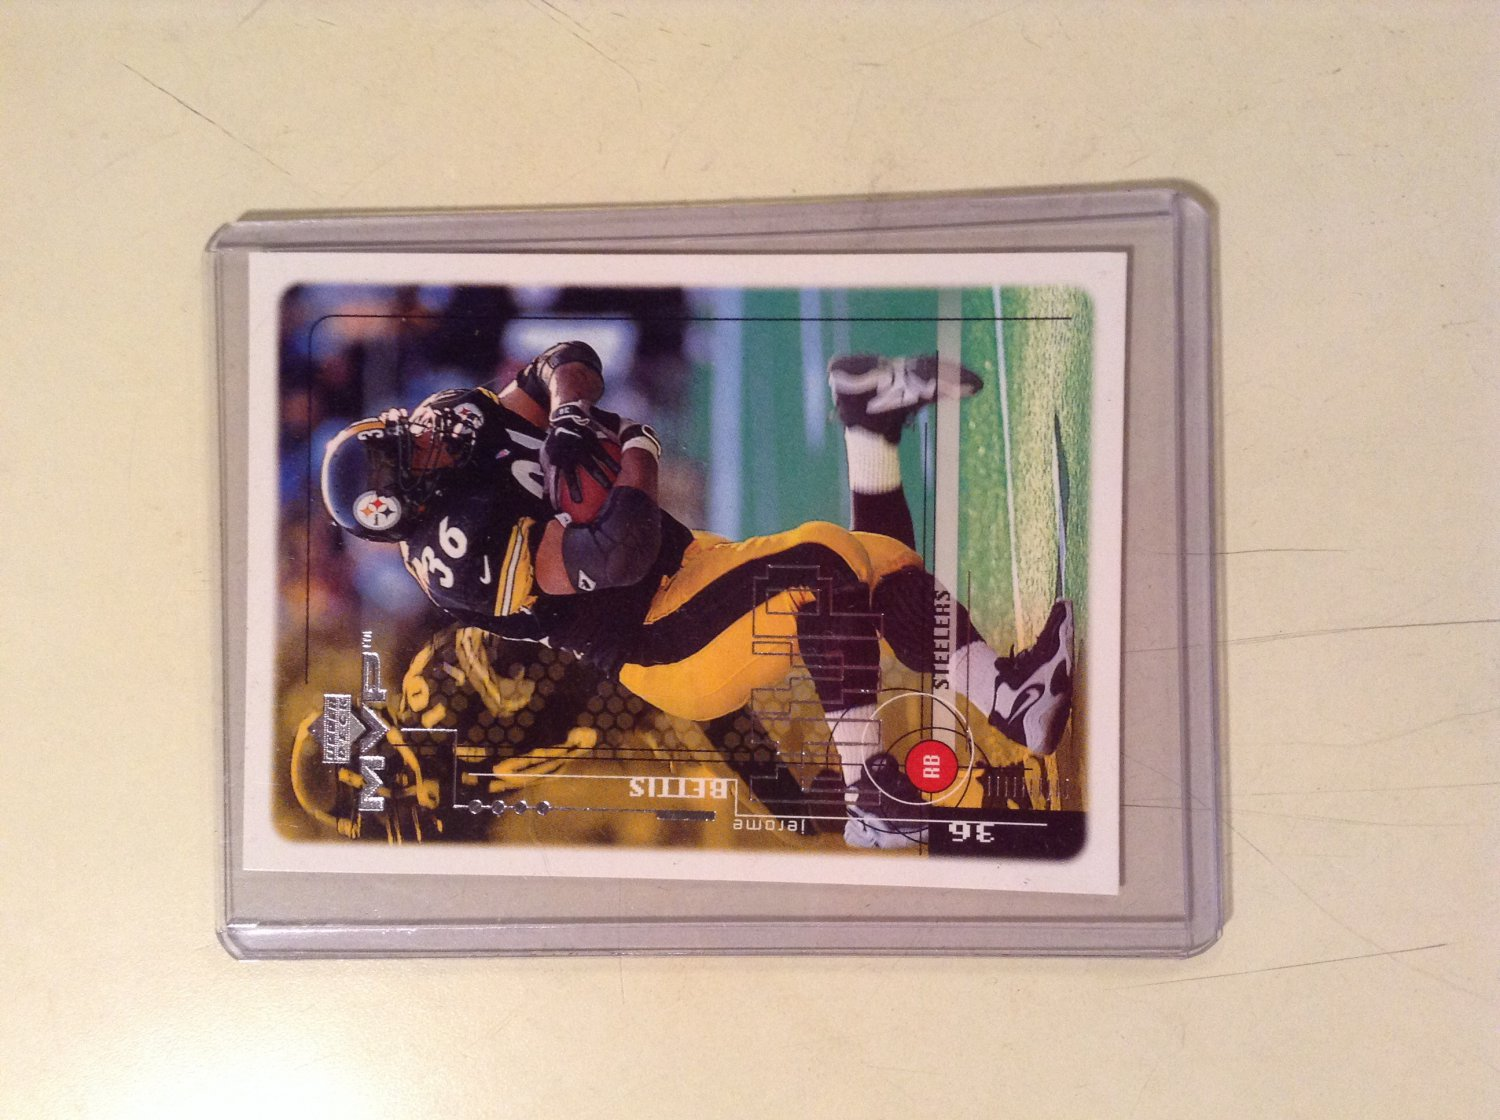 1999 Upper Deck MVP - Jerome Bettis (146)